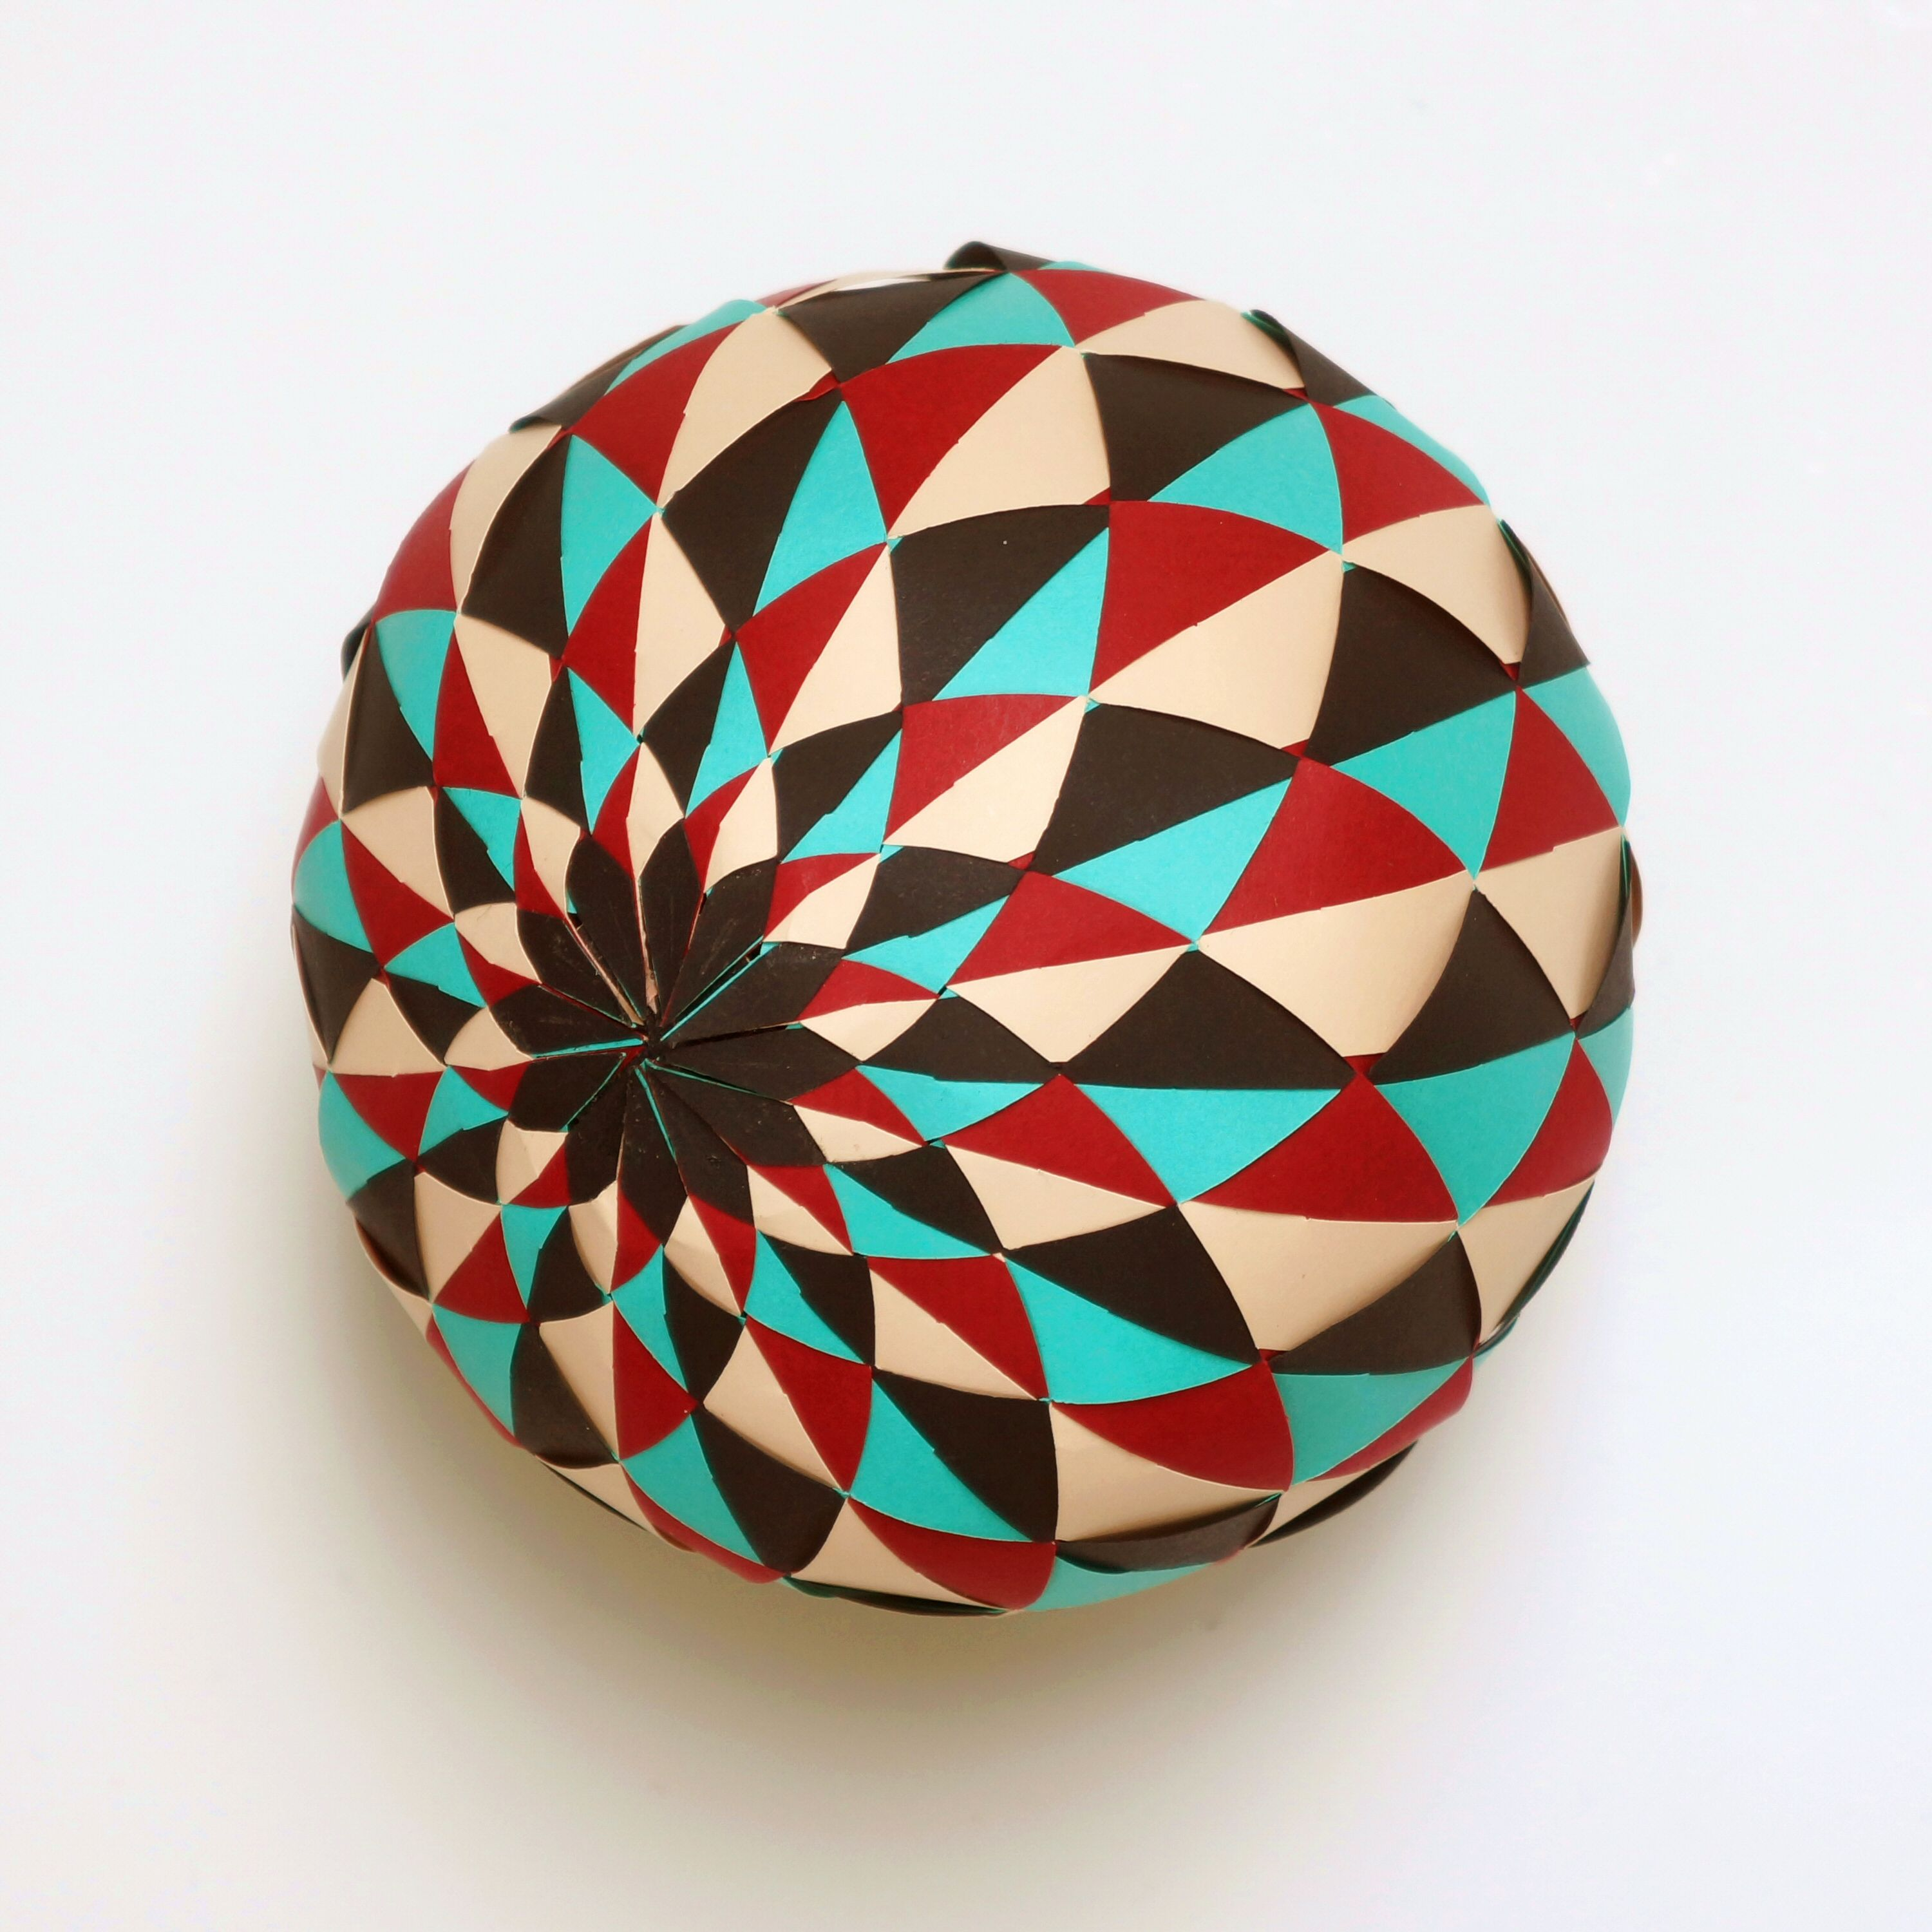 Sphere #014 with Triangles   Template, Origami and Papercraft - photo#14